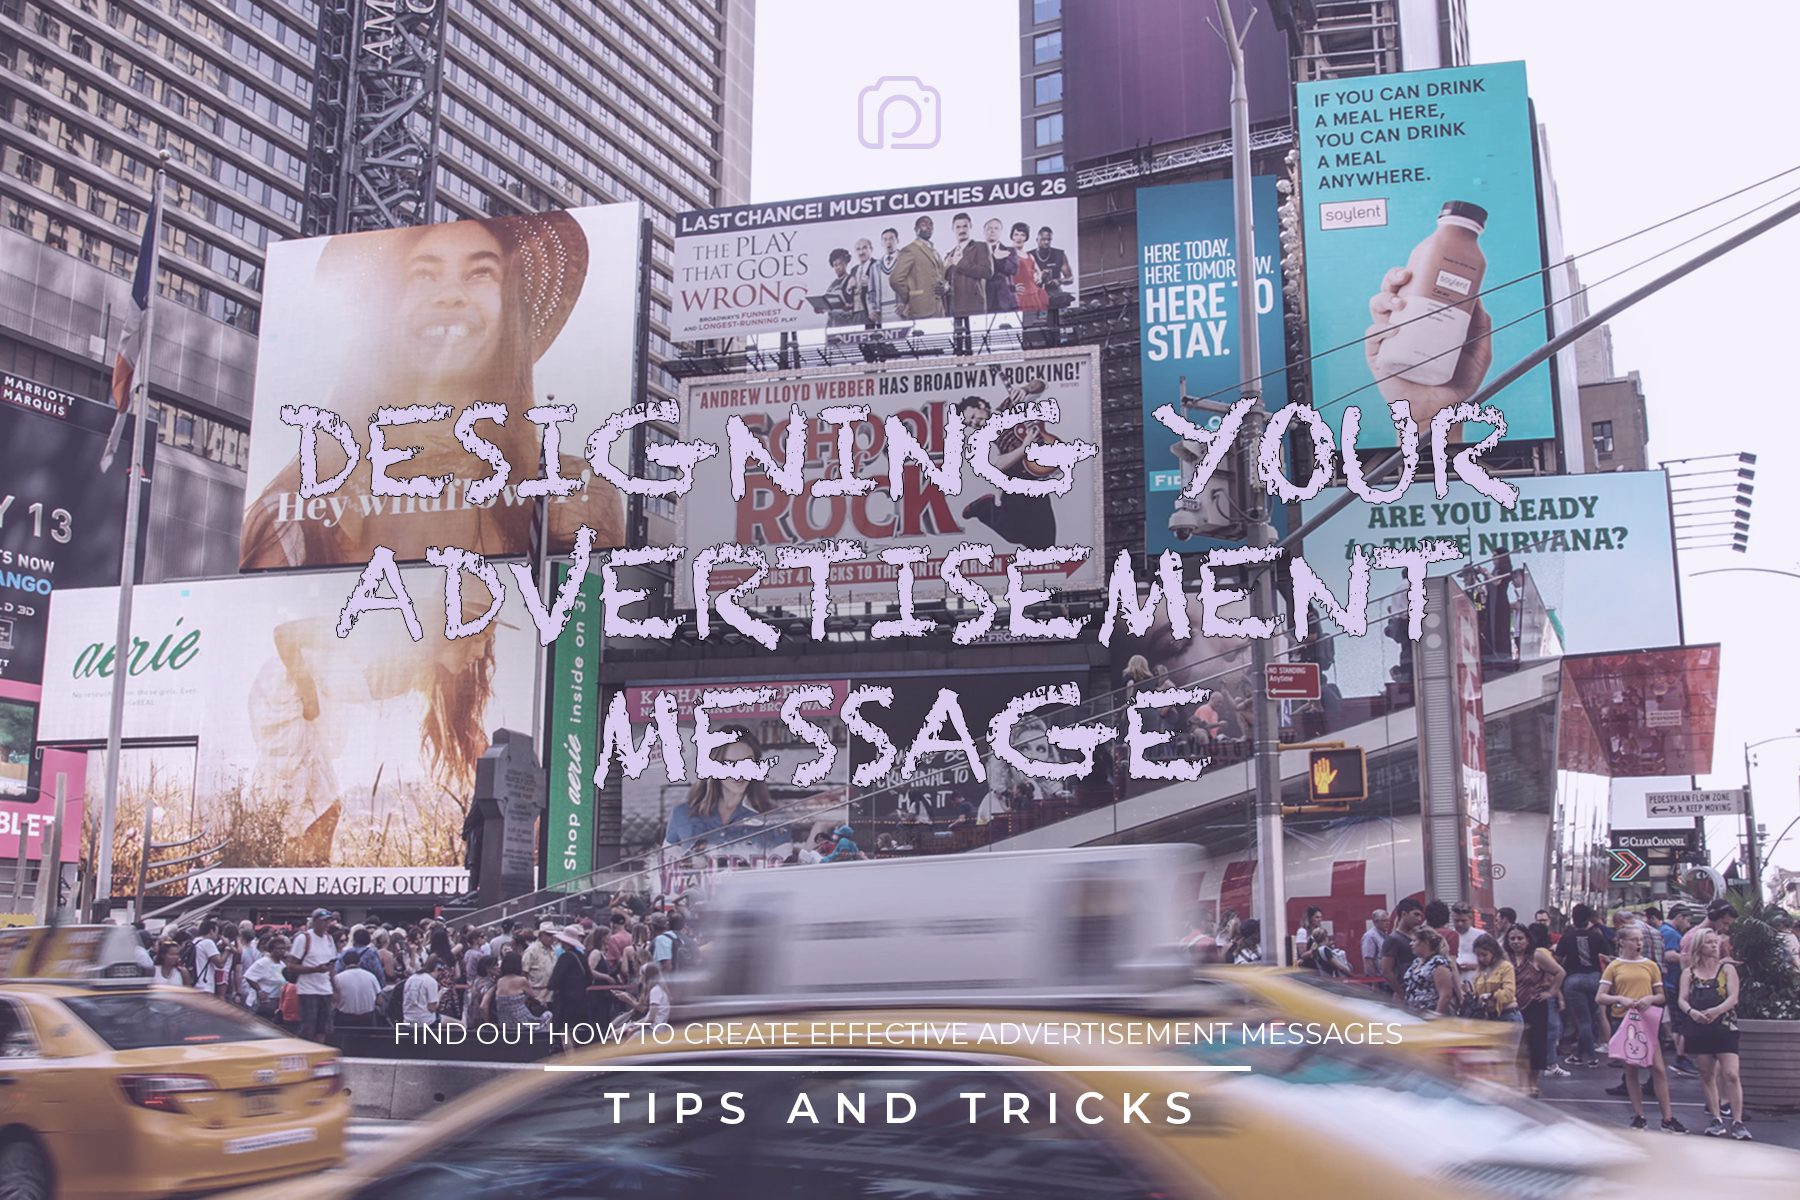 Designing your advertisement messages